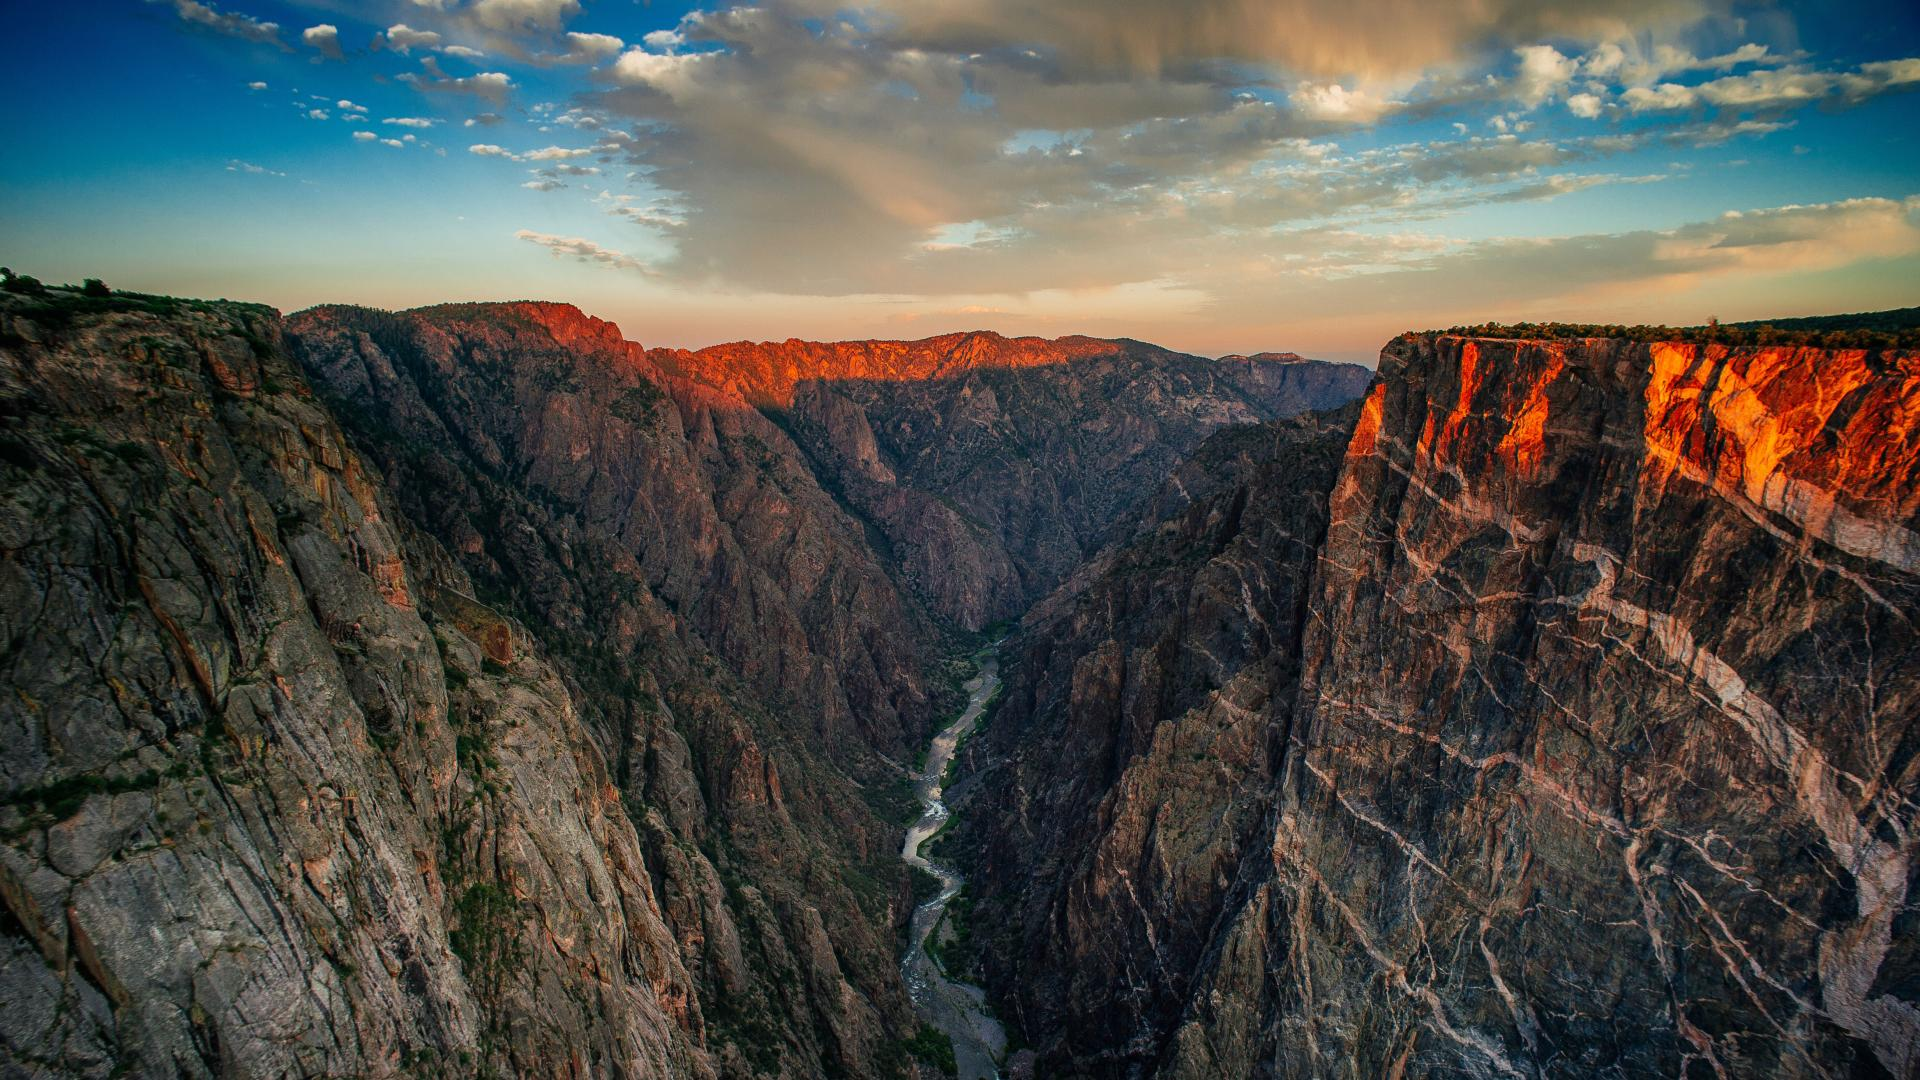 Black Canyon of the Gunnison in Colorado, USA